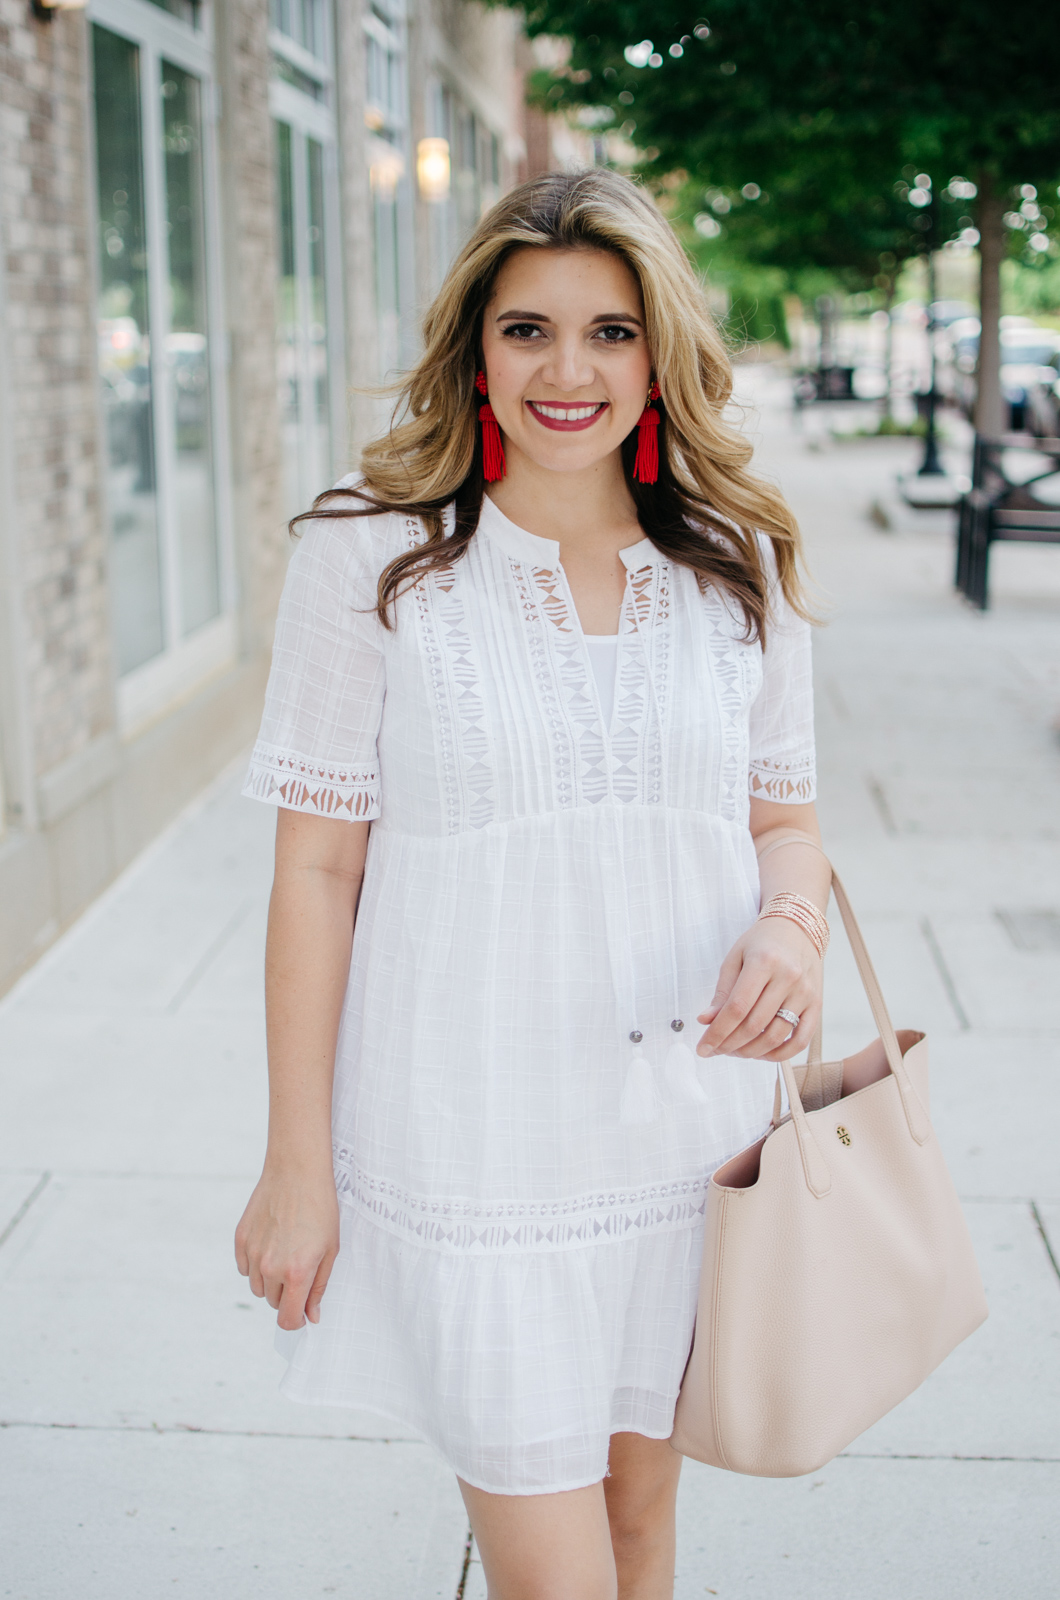 perfect white summer dress | For more cute weekend outfits, head to bylaurenm.com!